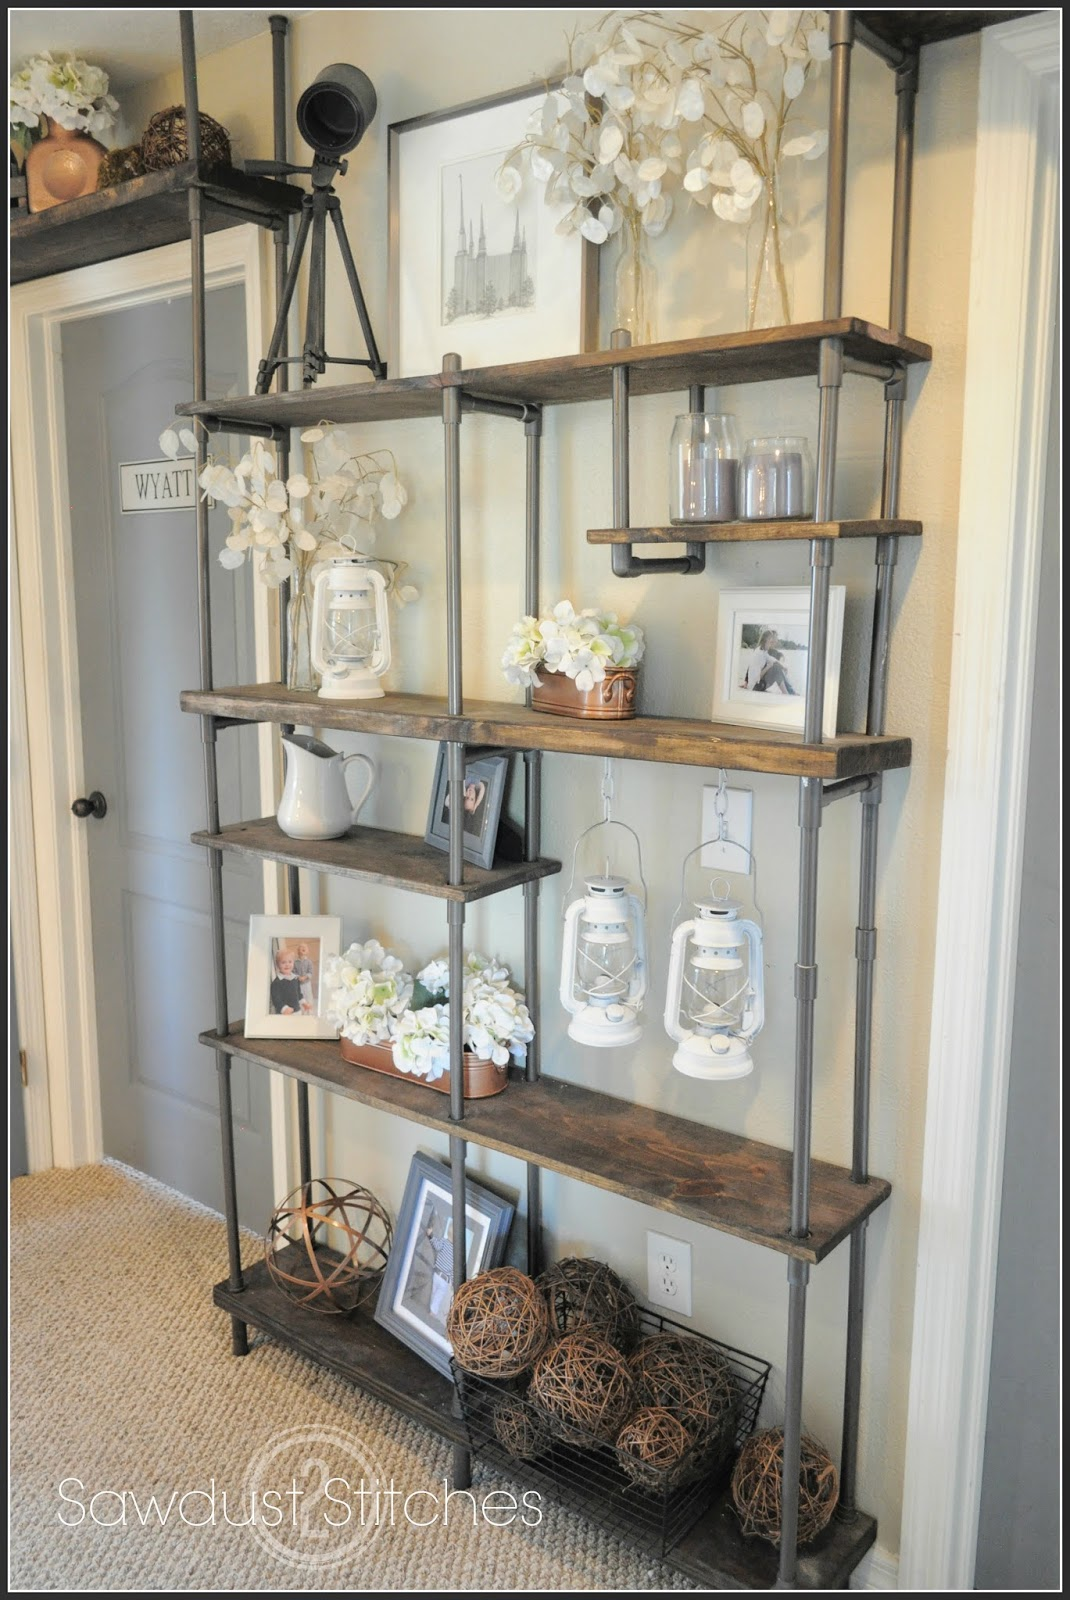 Industrial Bookcase Diy Remodelaholic Build A Budget Friendly Industrial Shelf Using Pvc